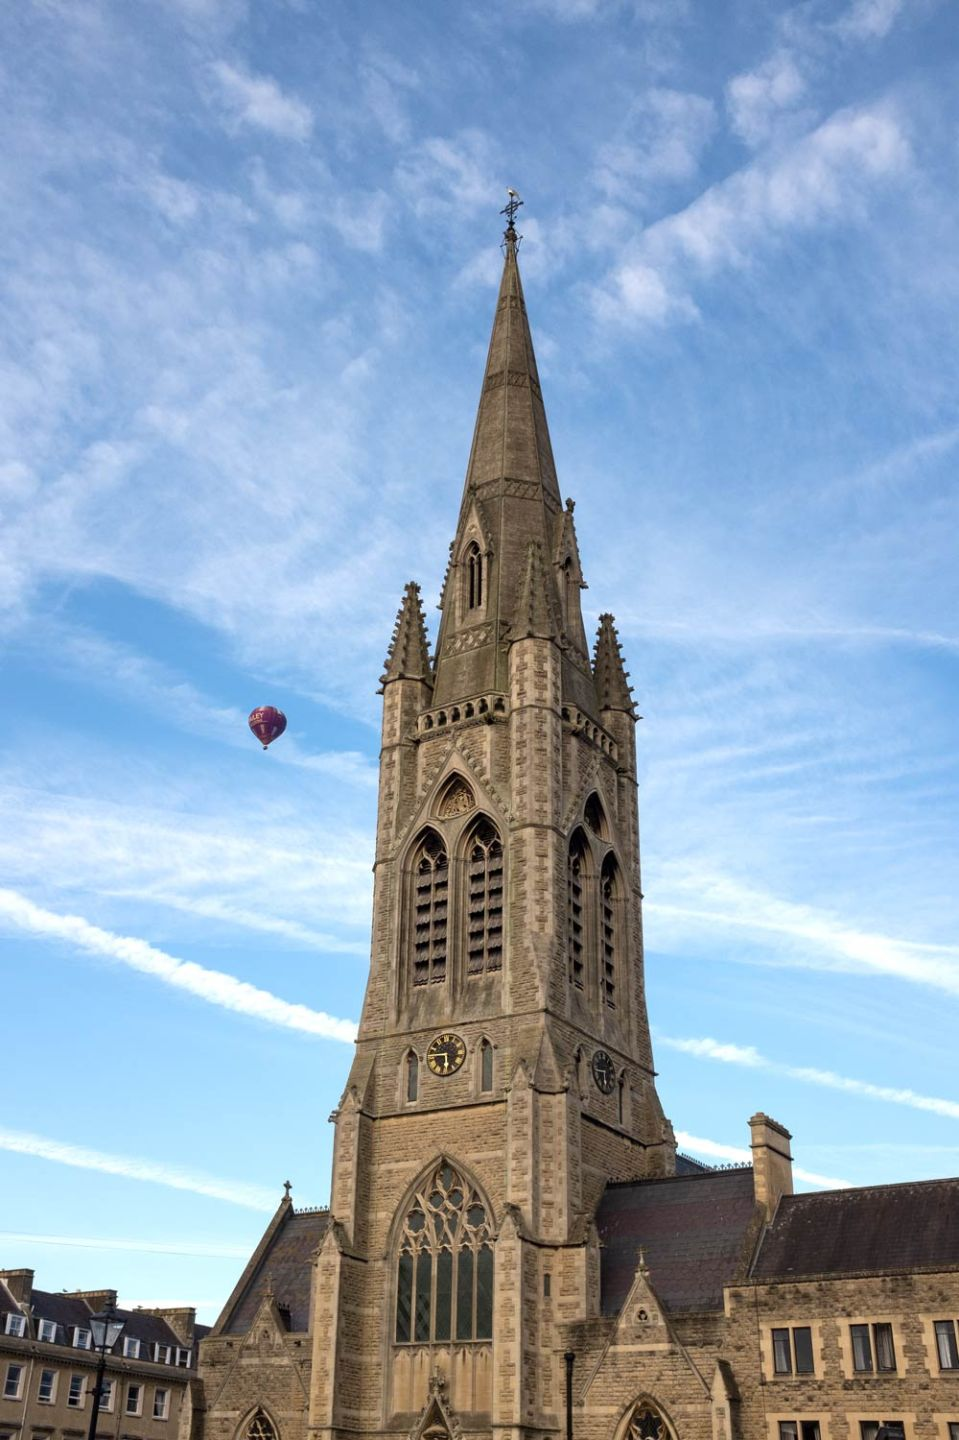 hot air balloon over a church in Bath, Somerset